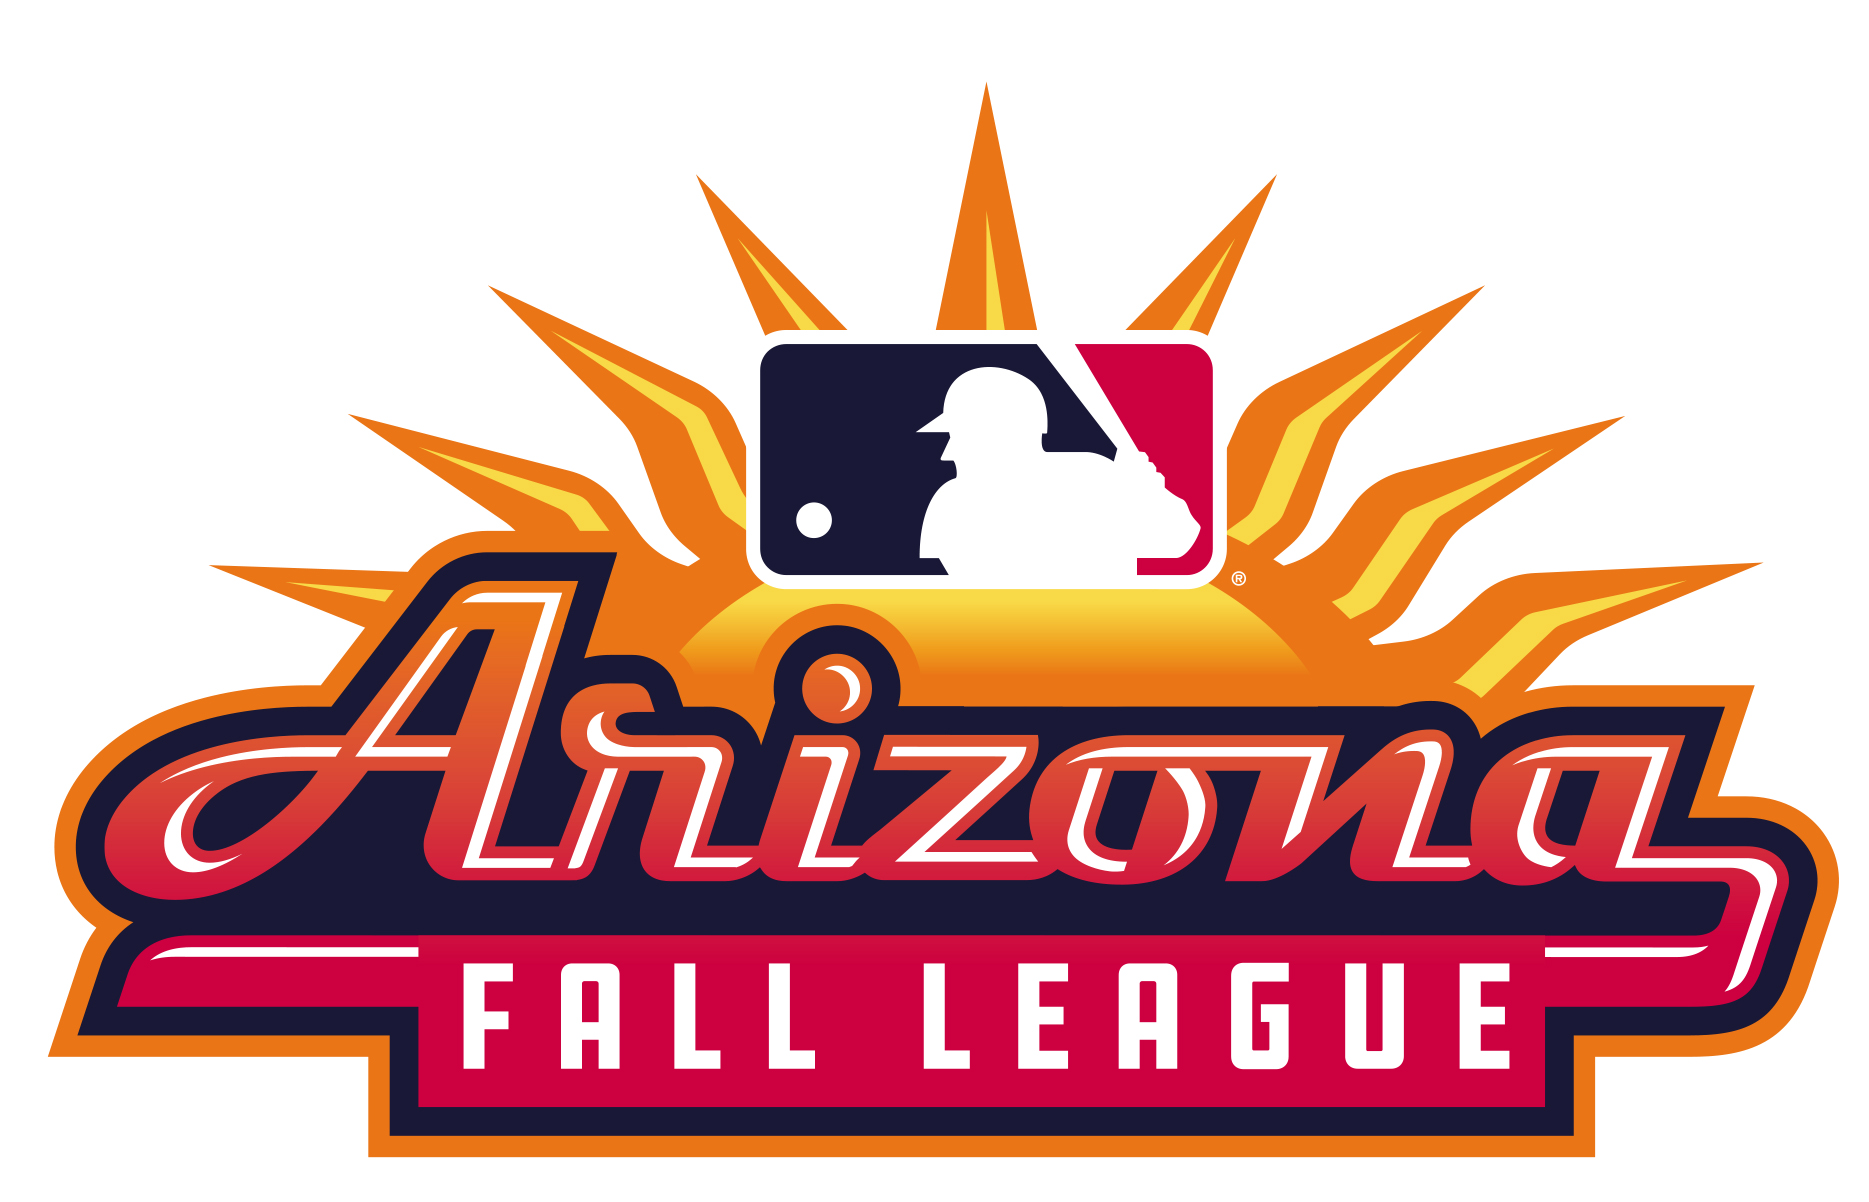 Student rate now available for 2019 SABR/IWBC Arizona Fall League Experience